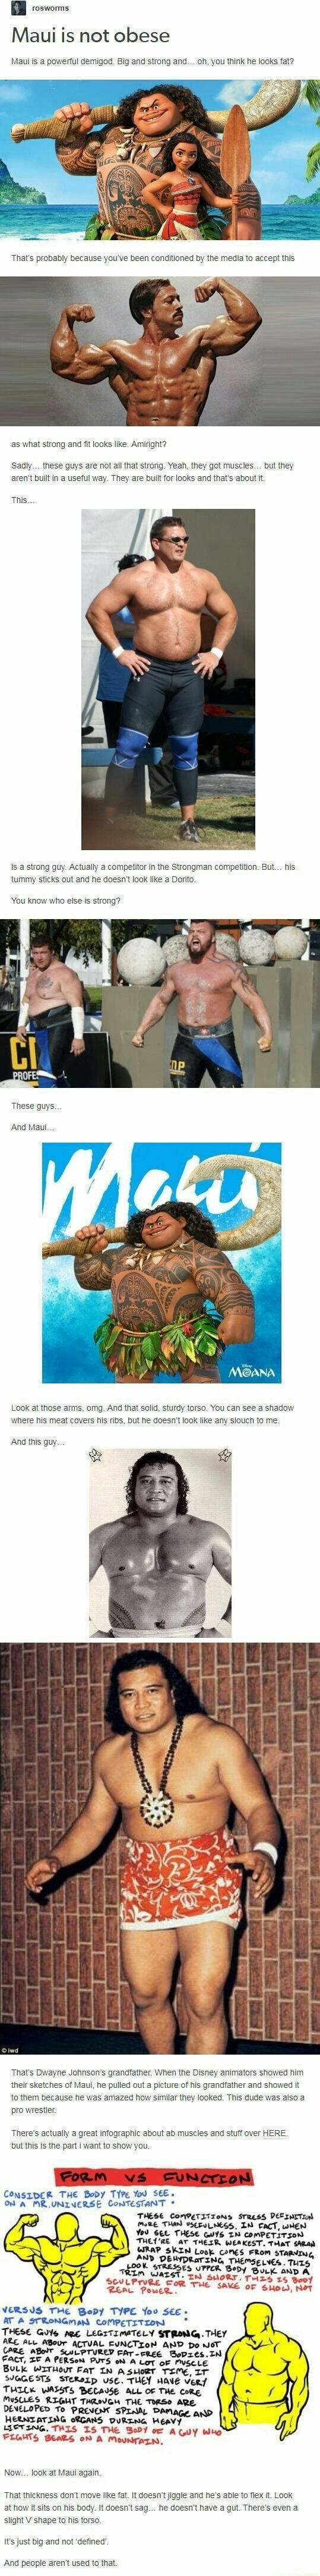 Vosworms Maui is not obese Maul is a powerful demigod. Big and strong and... oh, you think he looks fat? as what strong and fit looks like. Amiright? Sadly... these guys are not all that strong. Yeah, they got muscles... but they aren't built in useful way. They are built for looks and that's about it. This. is a strong guy. Actually a competitor in the Strongman competition. But... his tummy sticks out and he doesn't look like a Dorito. 'You know who else is strong? These guys And Maul Look at those arms, omg. And that solid, sturdy torso. You can see a shadow where his meat covers his ribs, but he doesn't look like any slouch to me. And this guy rt That's Dwayne Johnson's grandfather. When the Disney animators showed him their sketches of Maul, he pulled out a picture of his grandfather and showed it to them because he was amazed how similar they looked. This dude was also a pro wrestler There's actually great infographic about ab muscles and stuff over HERE. but this is the part i want to show you. (PORM VS SUNCrrON CONSIDER THE Body TYre You SEE ON A MRUNINERSE ConTestanT THESE ComPeTsizons Srress THAN USEEULNESS, IN CACT, WHEN You THESE GUYS TN ComPETITION THEL'RE AT THEDR WEAKEST. THaT SAAN SKIN Look comes FROm DRETING UPPER THEMSELVES. THI5 STRESSES UPPER Be} Pou SAME OF VERSUS THE Bedy TYPE You See- AT A STRONGMeN COMPETITION * THESE LEGITIMATELY STRONG. THEY ARE ALL ABour ACTYAL EYNCTION AND Do NoT CARE SWLPTUREY Frr-cRee Bopzes.INn ACT, PERSON PUTS ON A Lot oF PUSCLE BULK WrrHour FaT IN asuoer Tome, SYGGESTS STEReLD USE. THEY HONE THICK WASSTS BECAUSE ALL OF THE CoRE. MUSLLES RIGHT THRevG THE TRS? ARE DENELOPED To PRevENT Damage 4 HERNTATING oRGANS DURING Heavy, A GIY Wio LOTS Now... look at Maui again. That thickness don't move like fat. It doesn't jiggle and he's able to flex it. Look at how it sits on his body. It doesn't sag... he doesn't have a gut. There's even a slight V shape to his torso, It's just big and not 'defined' And people aren't used to t